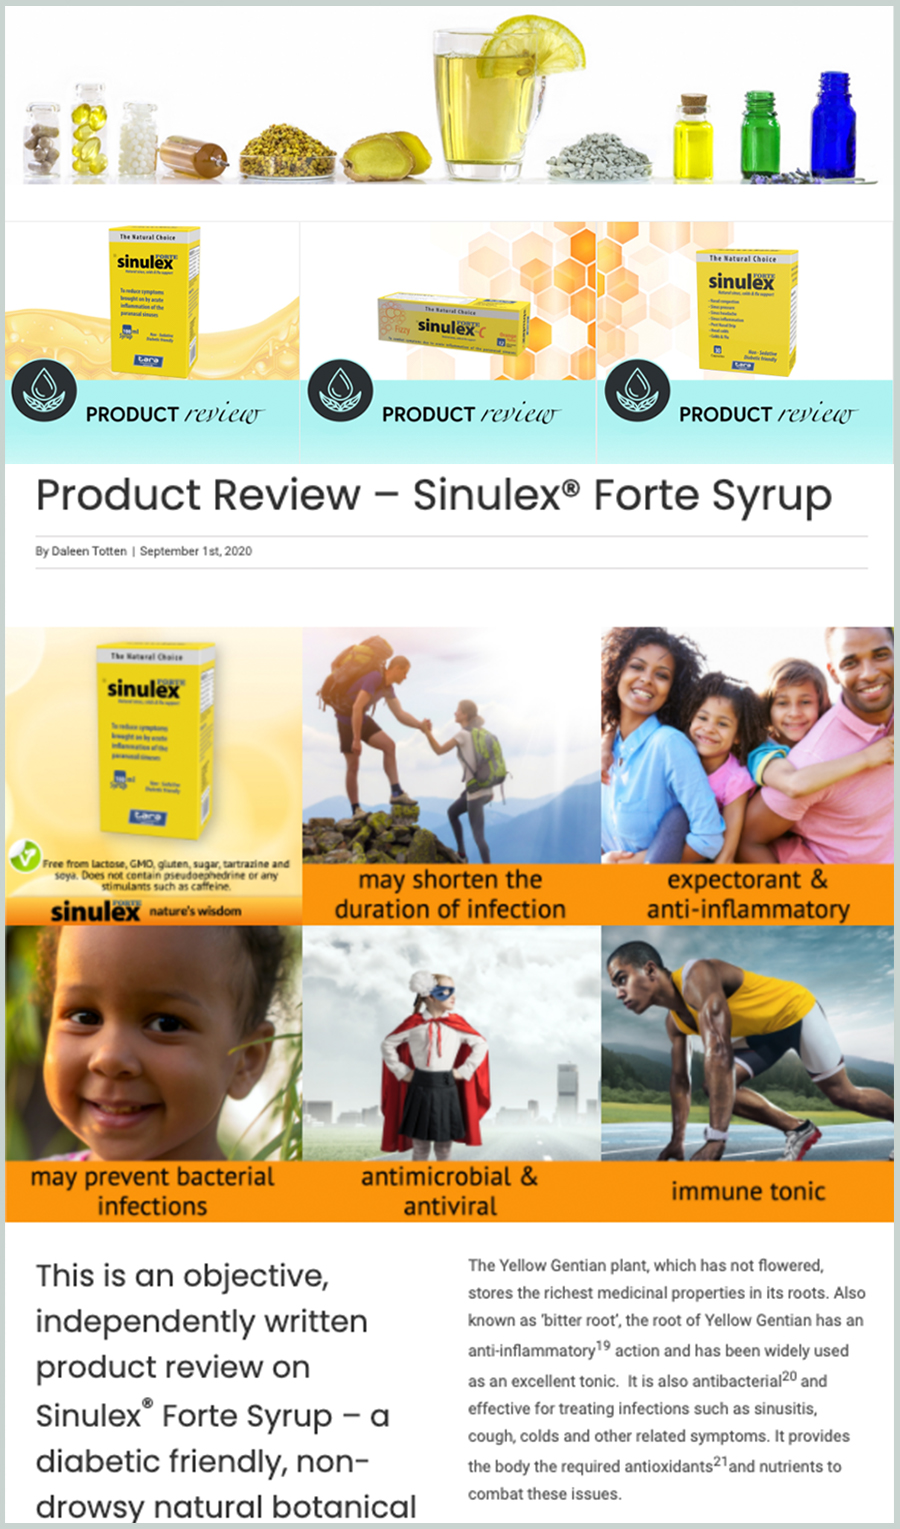 Product Review Examples